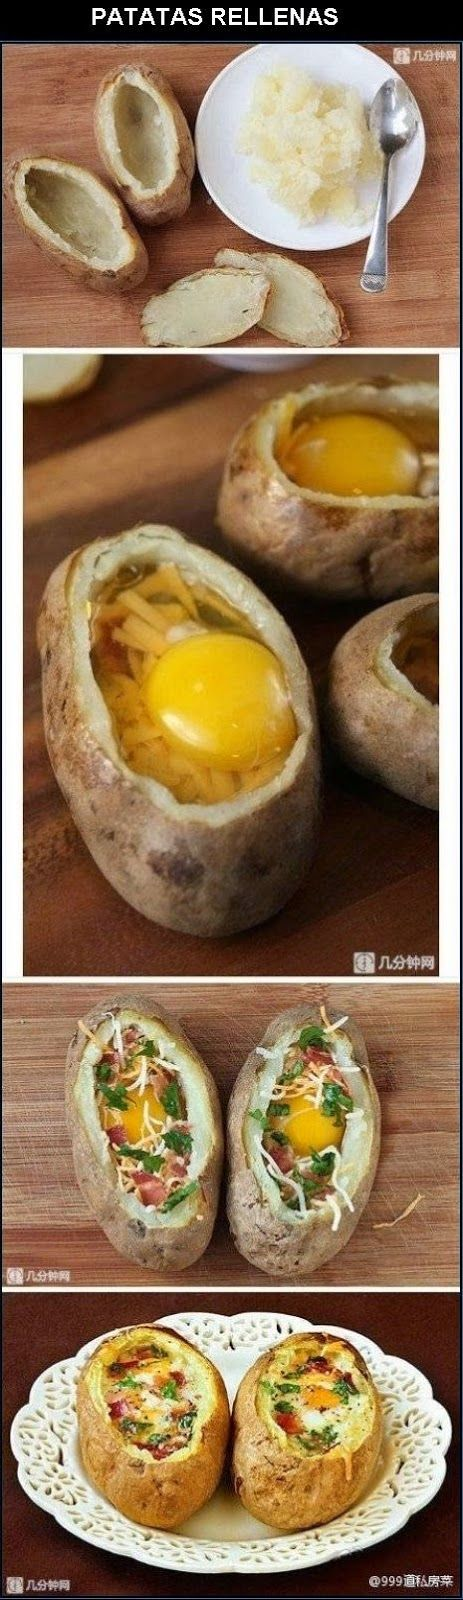 How to Cook Delicious Stuffed Potatoes